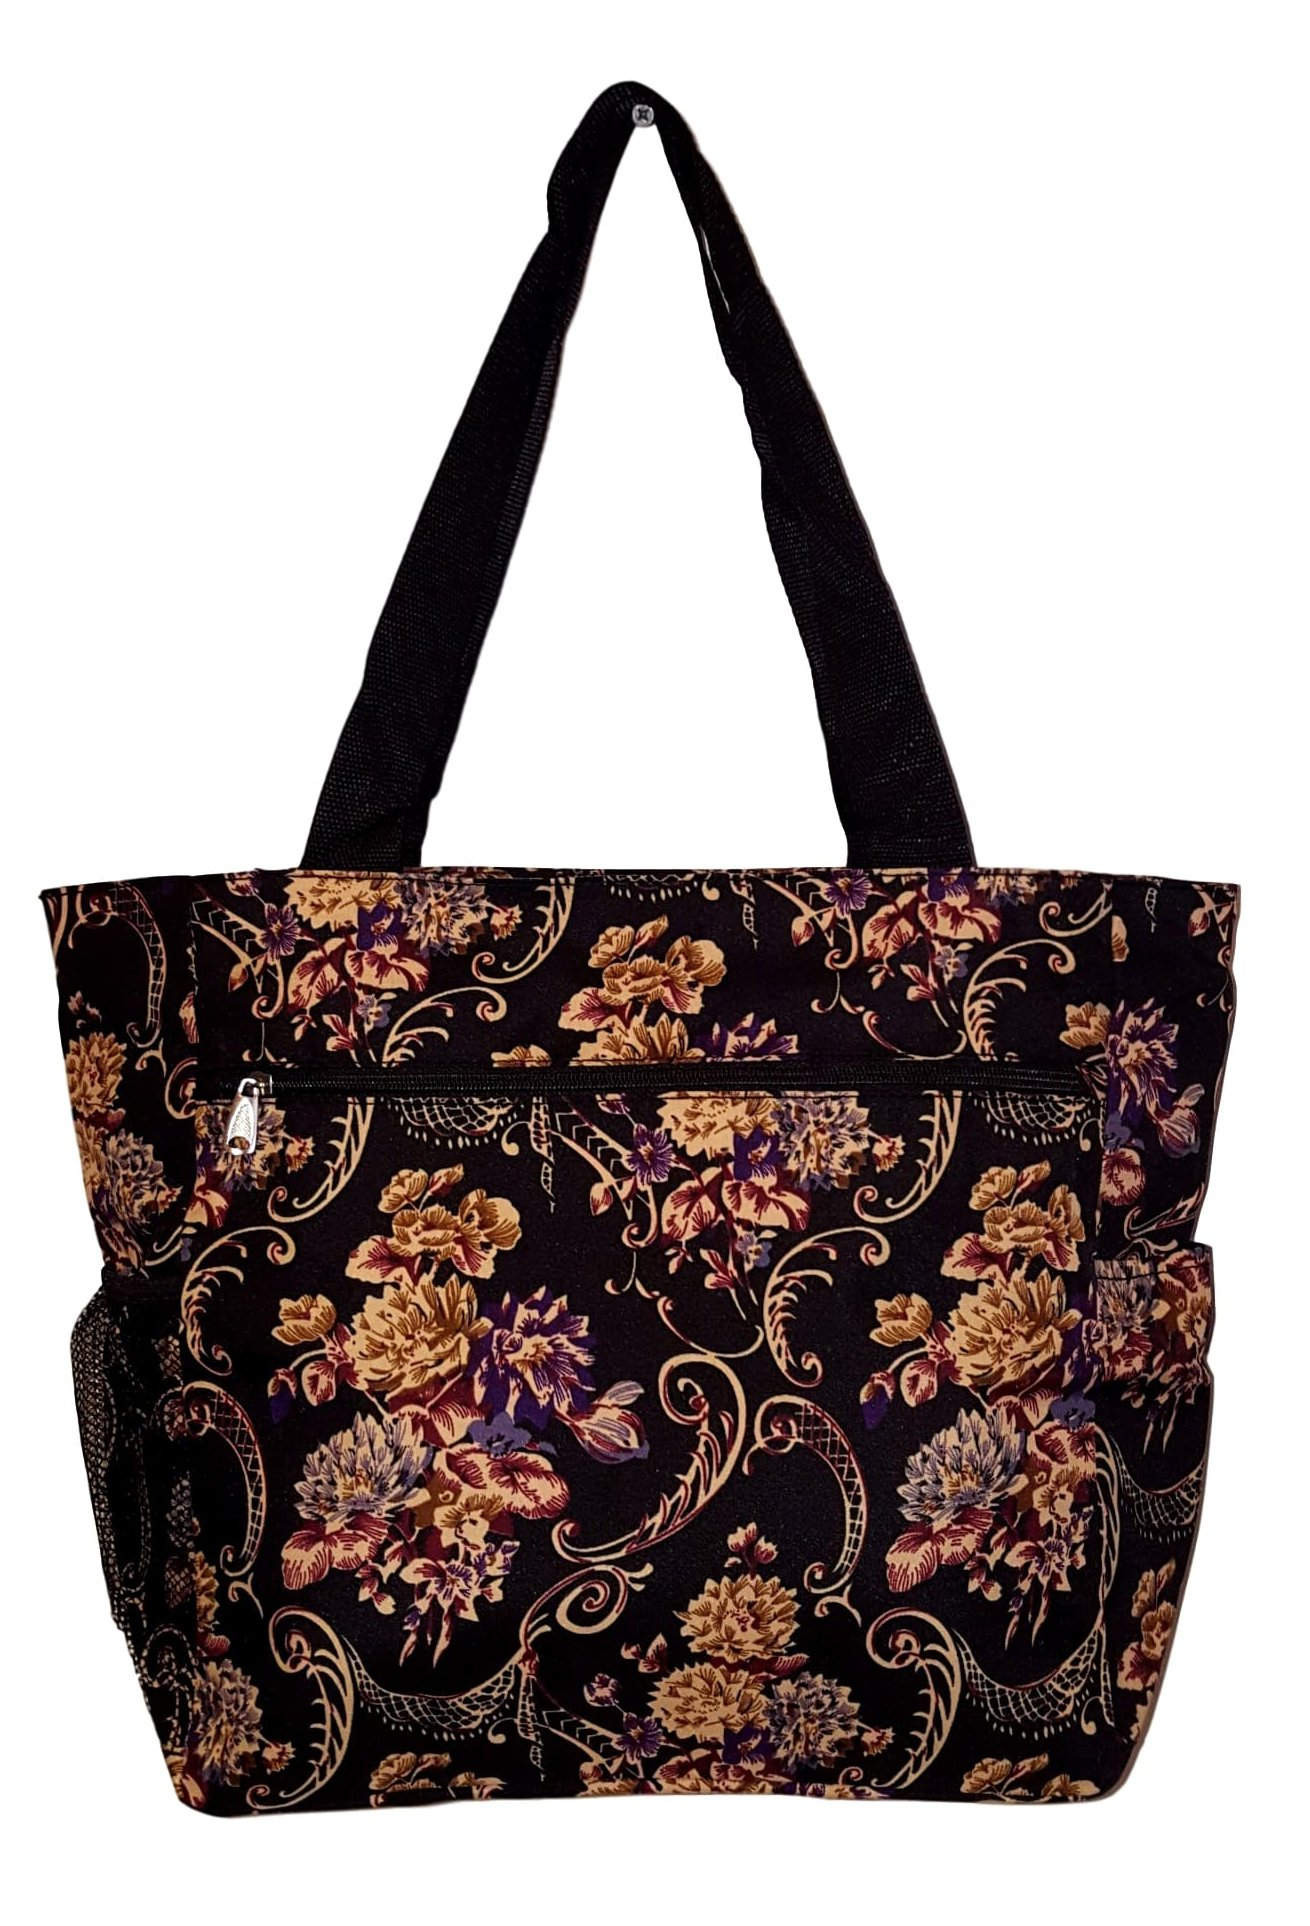 Large Multi - Pocket Fashion Zipper Top Organizing Beach Bag Tote - Custom Embroidery Available (Autumn Floral Print)